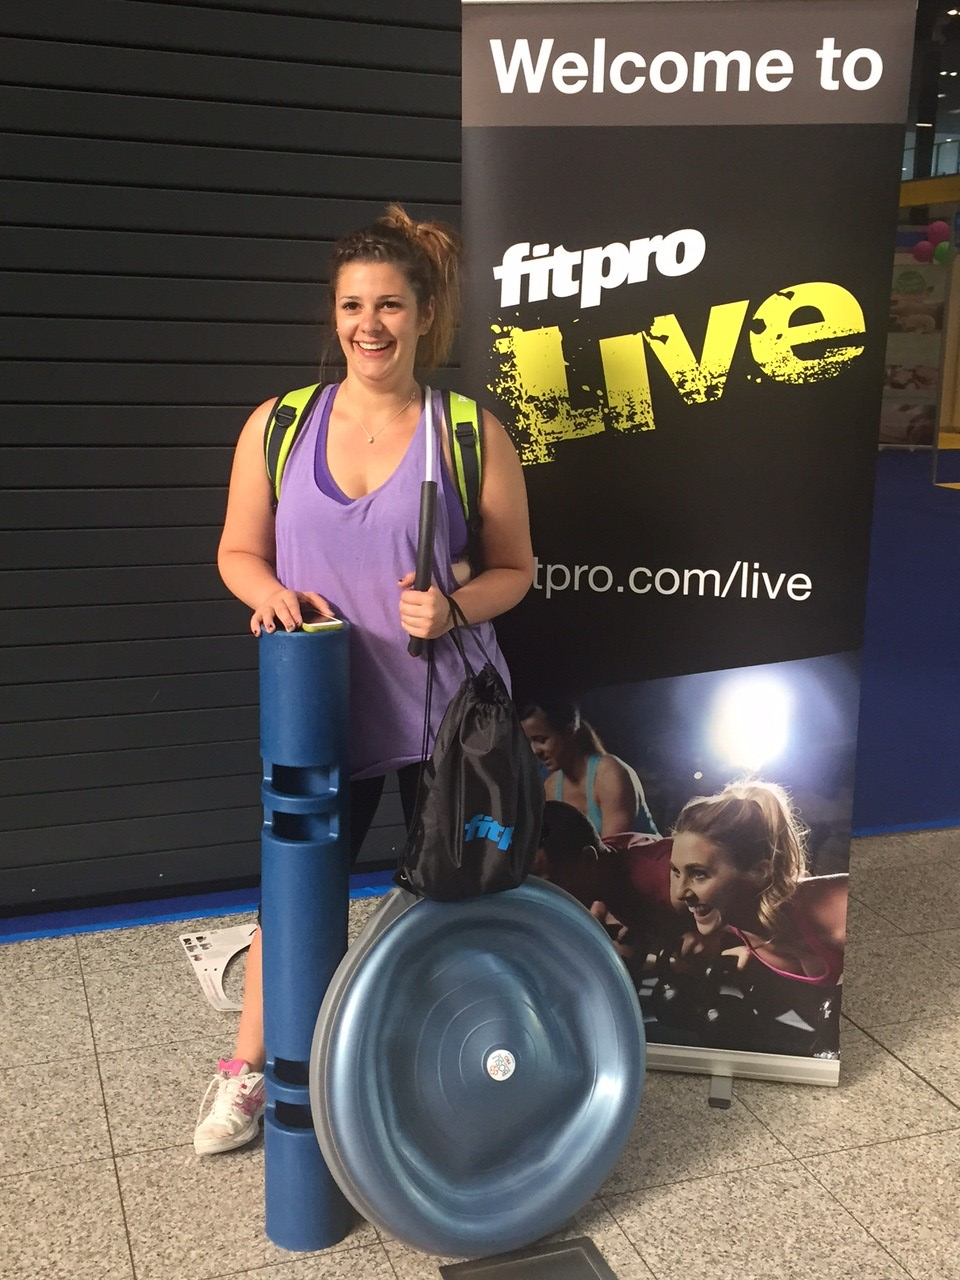 Jen with her winnings! Walking out the proud owner of aViPR and a Bosu ball!